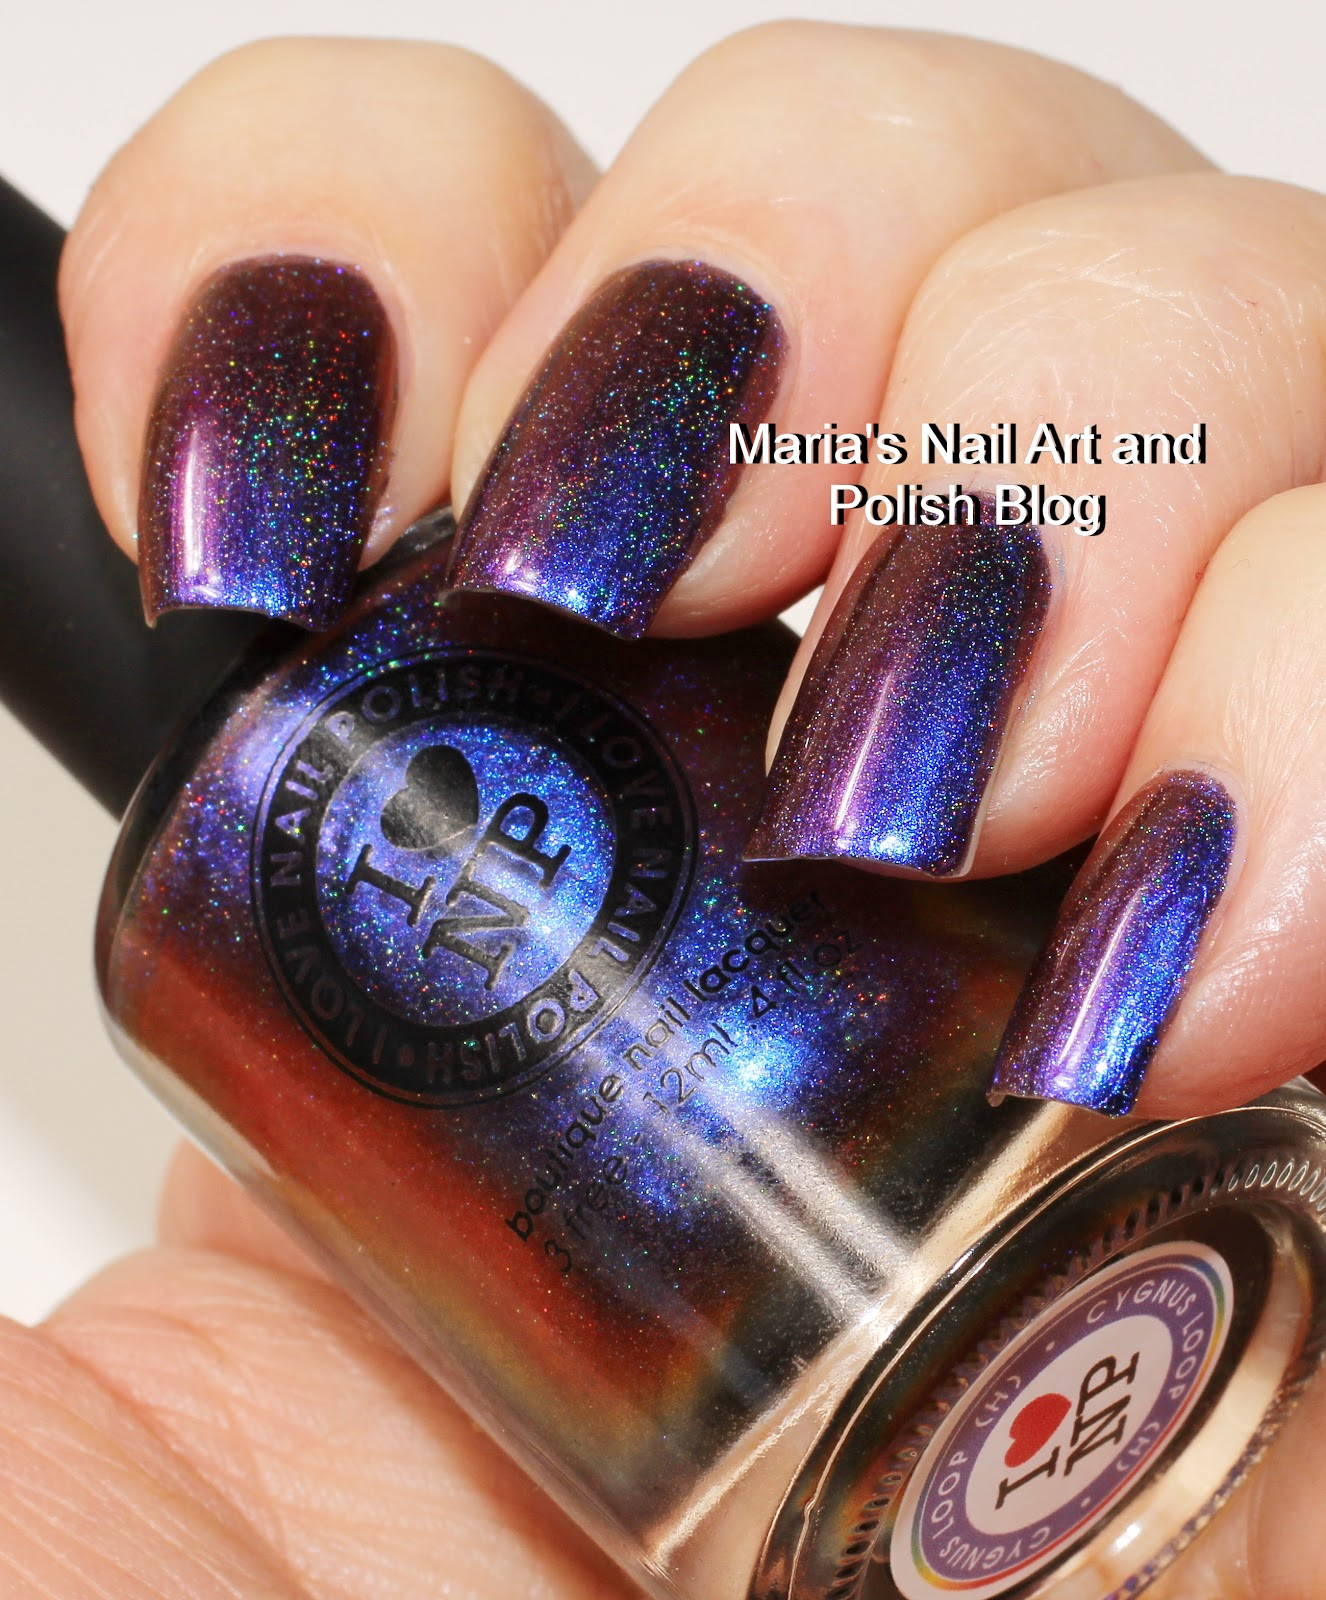 Marias Nail Art And Polish Blog Flushed With Stripes And: Marias Nail Art And Polish Blog: ILNP Birefringence (H